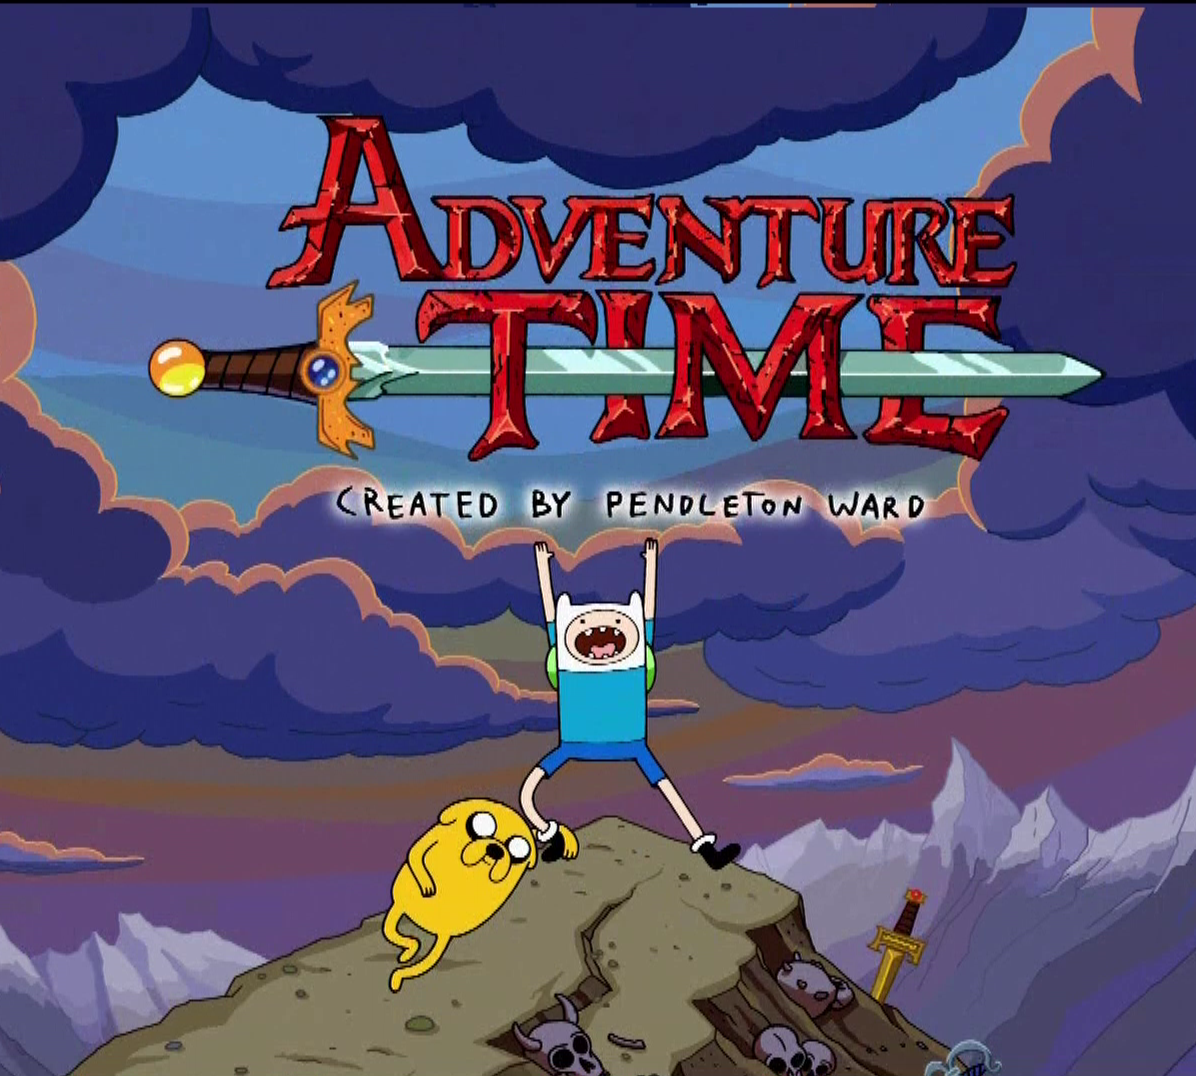 Adventure Time Adventure_time_with_finn_jake1